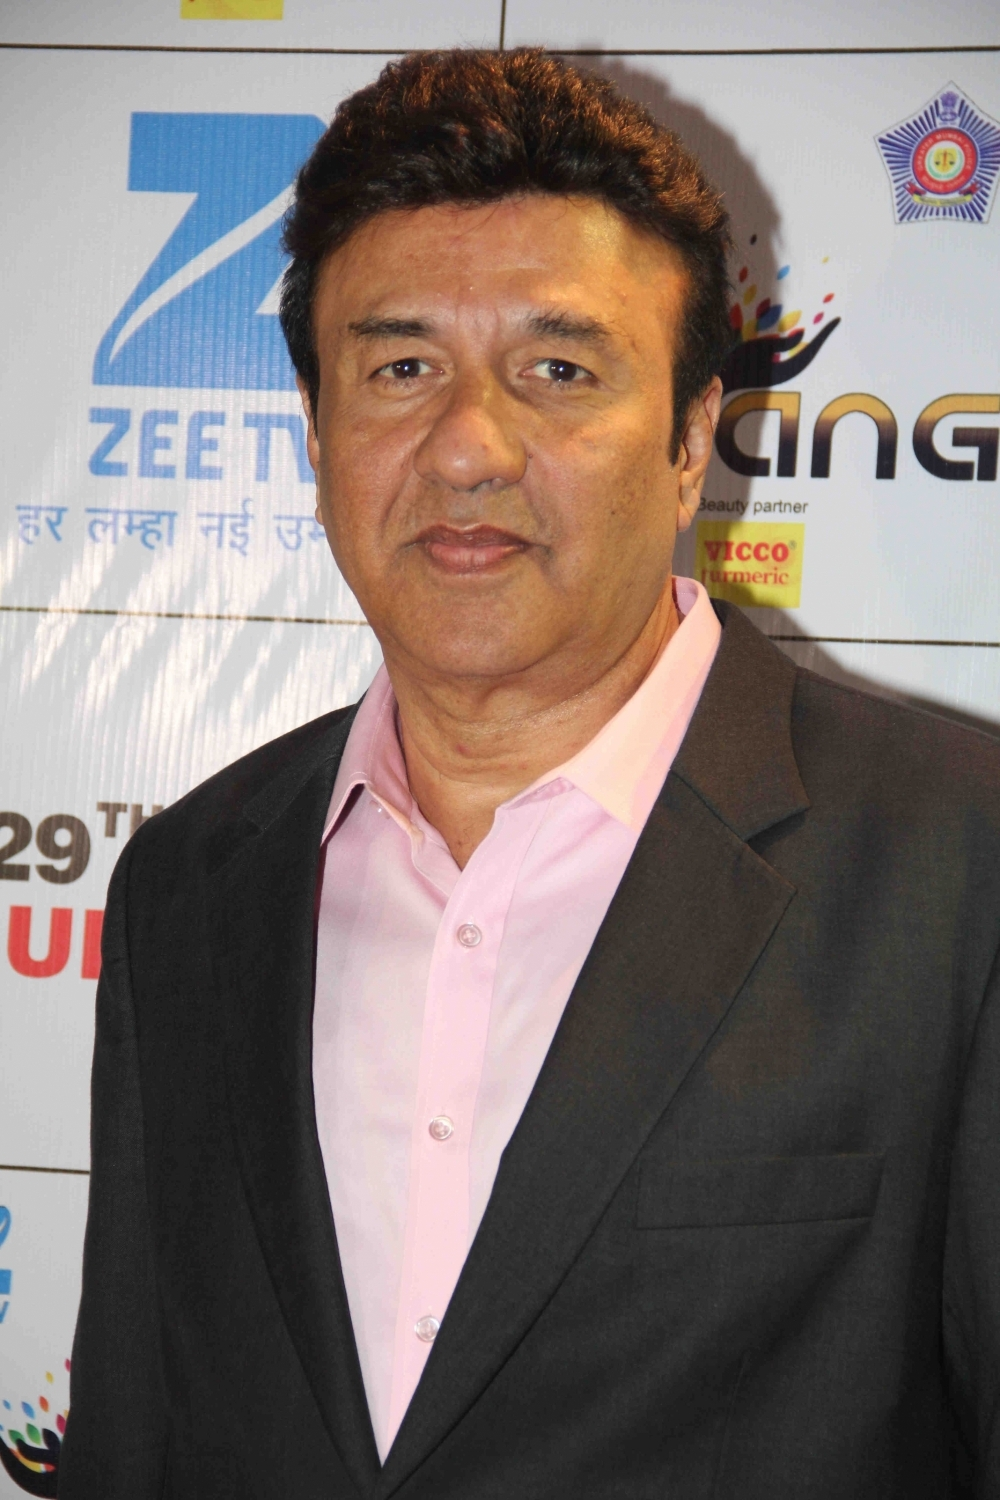 Mumbai: Music composer Anu Malik during the Umang Mumbai Police Show 2017 in Mumbai on Jan 22, 2017. (Photo: IANS)